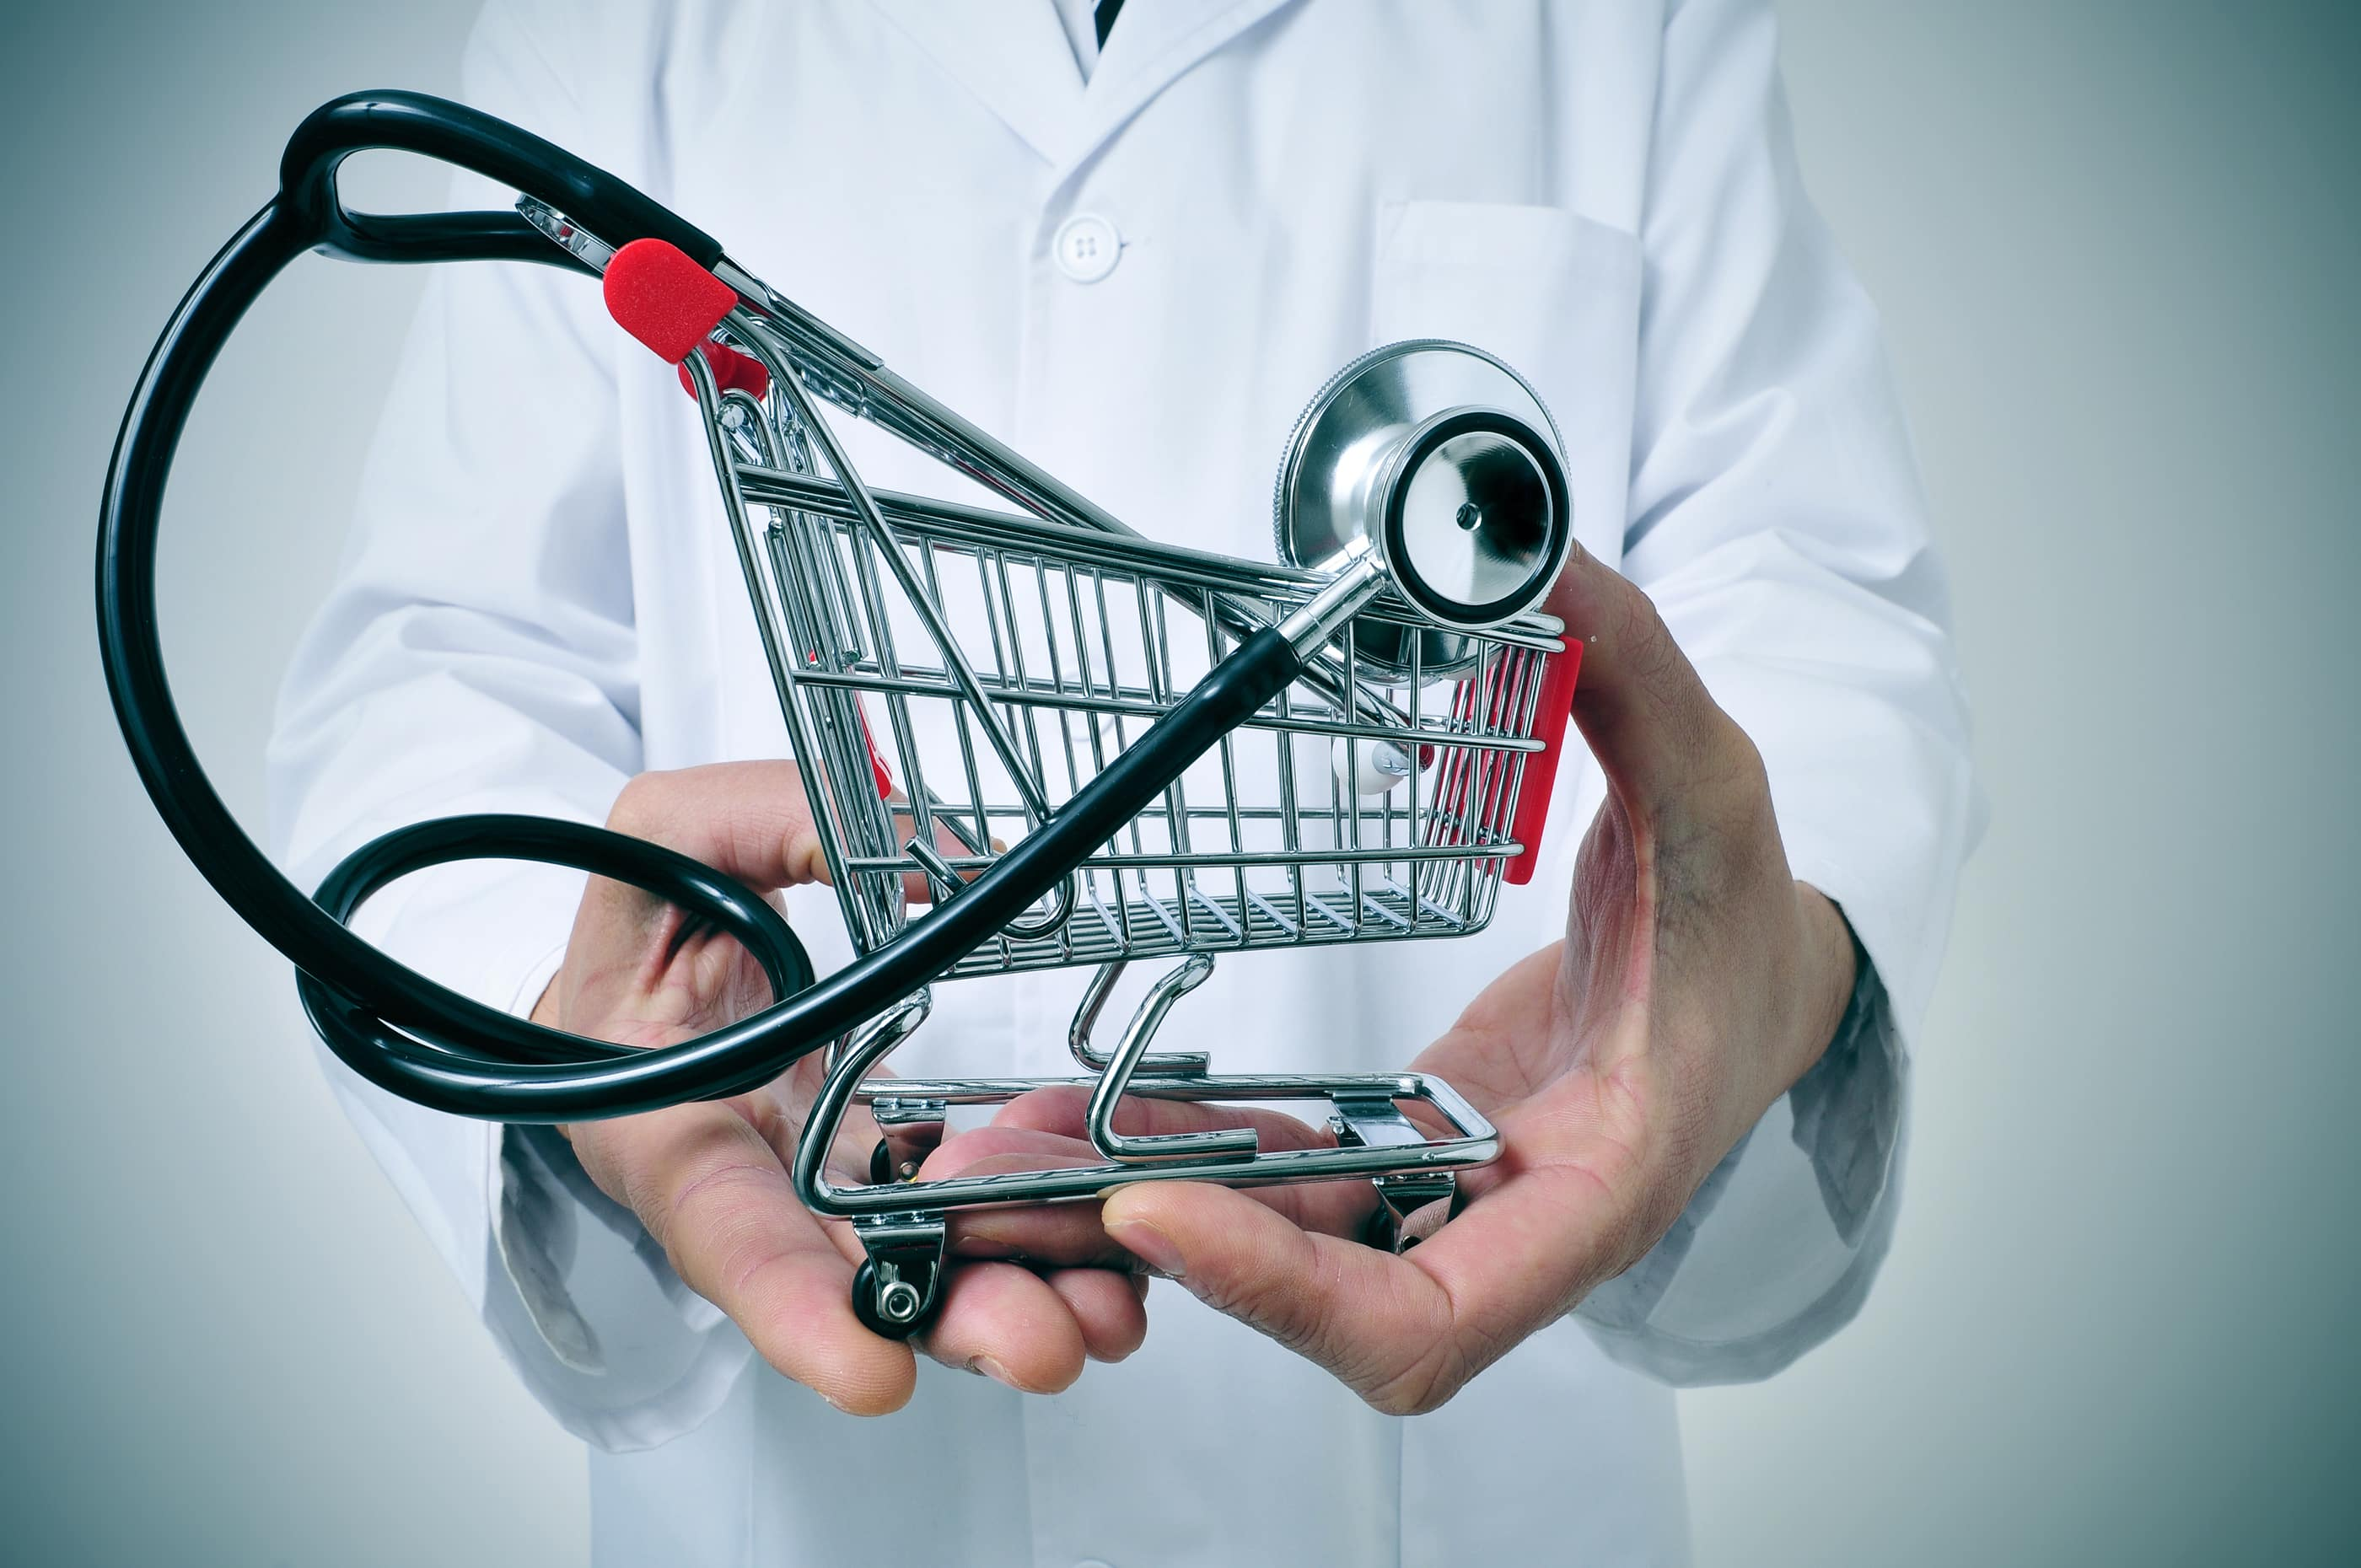 doctor holding in his hand a shopping cart with a stethoscope inside, depicting the health care industry concept